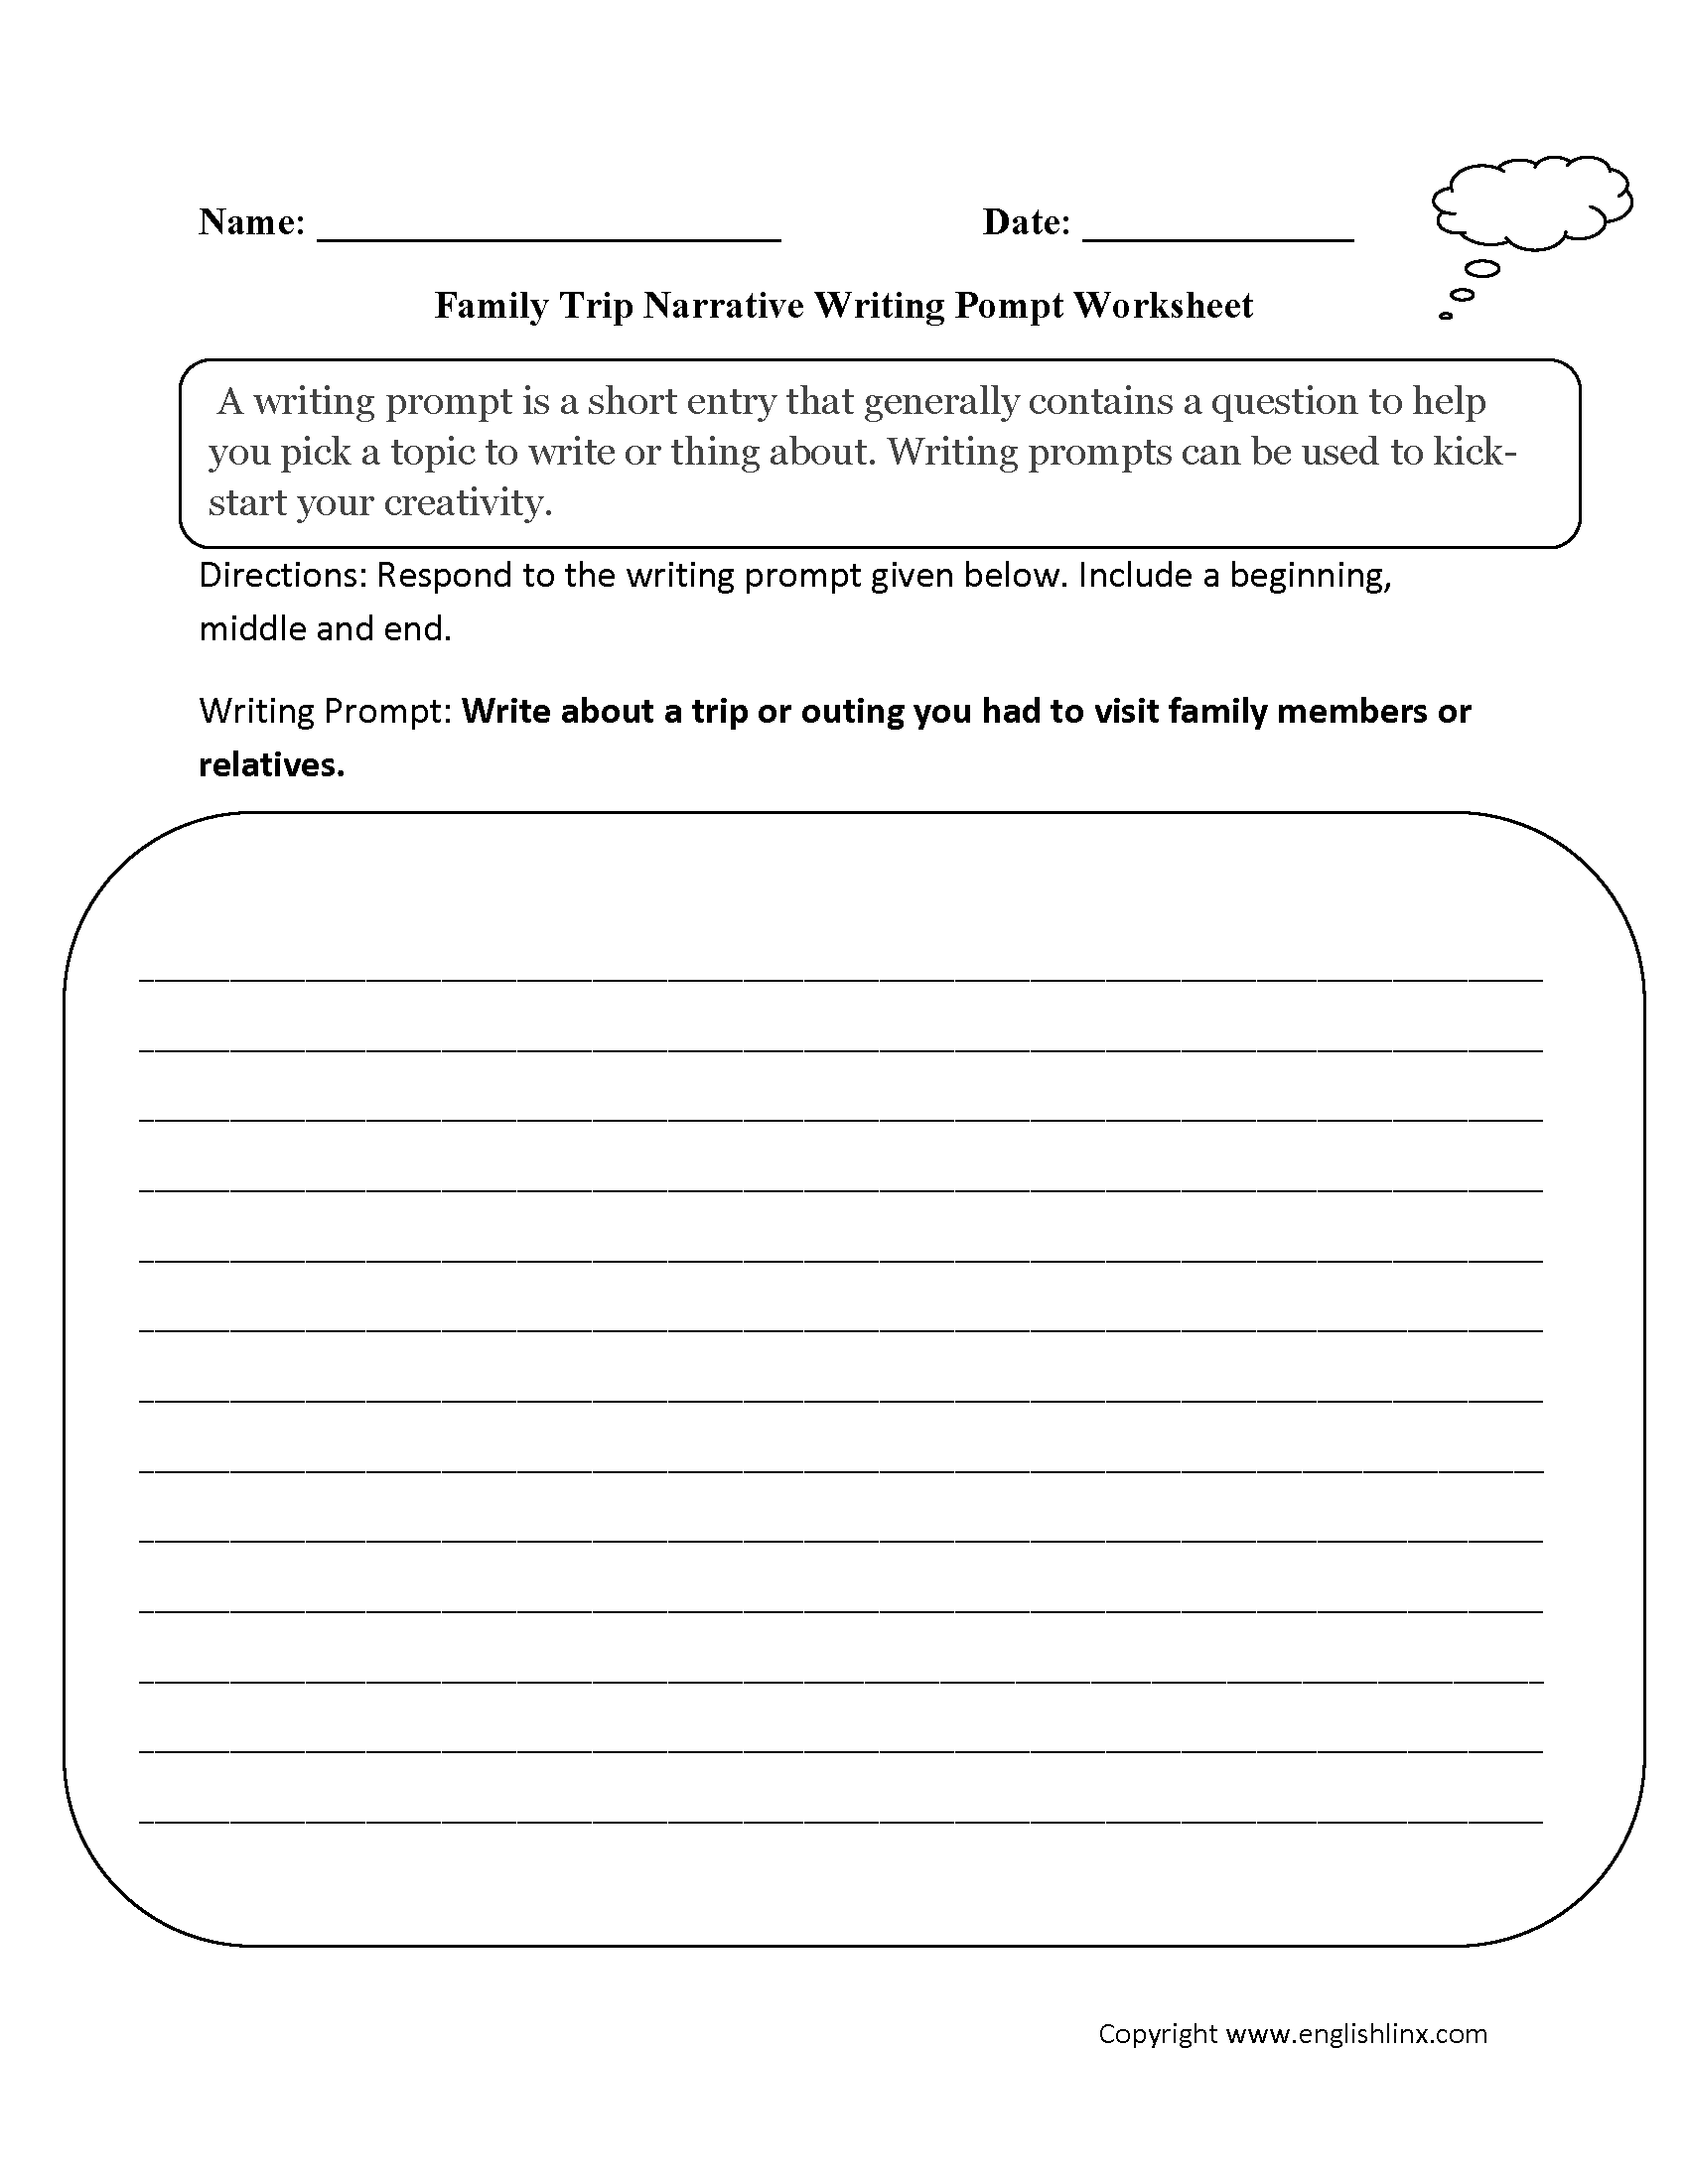 Uncategorized 2nd Grade Writing Worksheets writing prompts worksheets narrative prompt worksheet